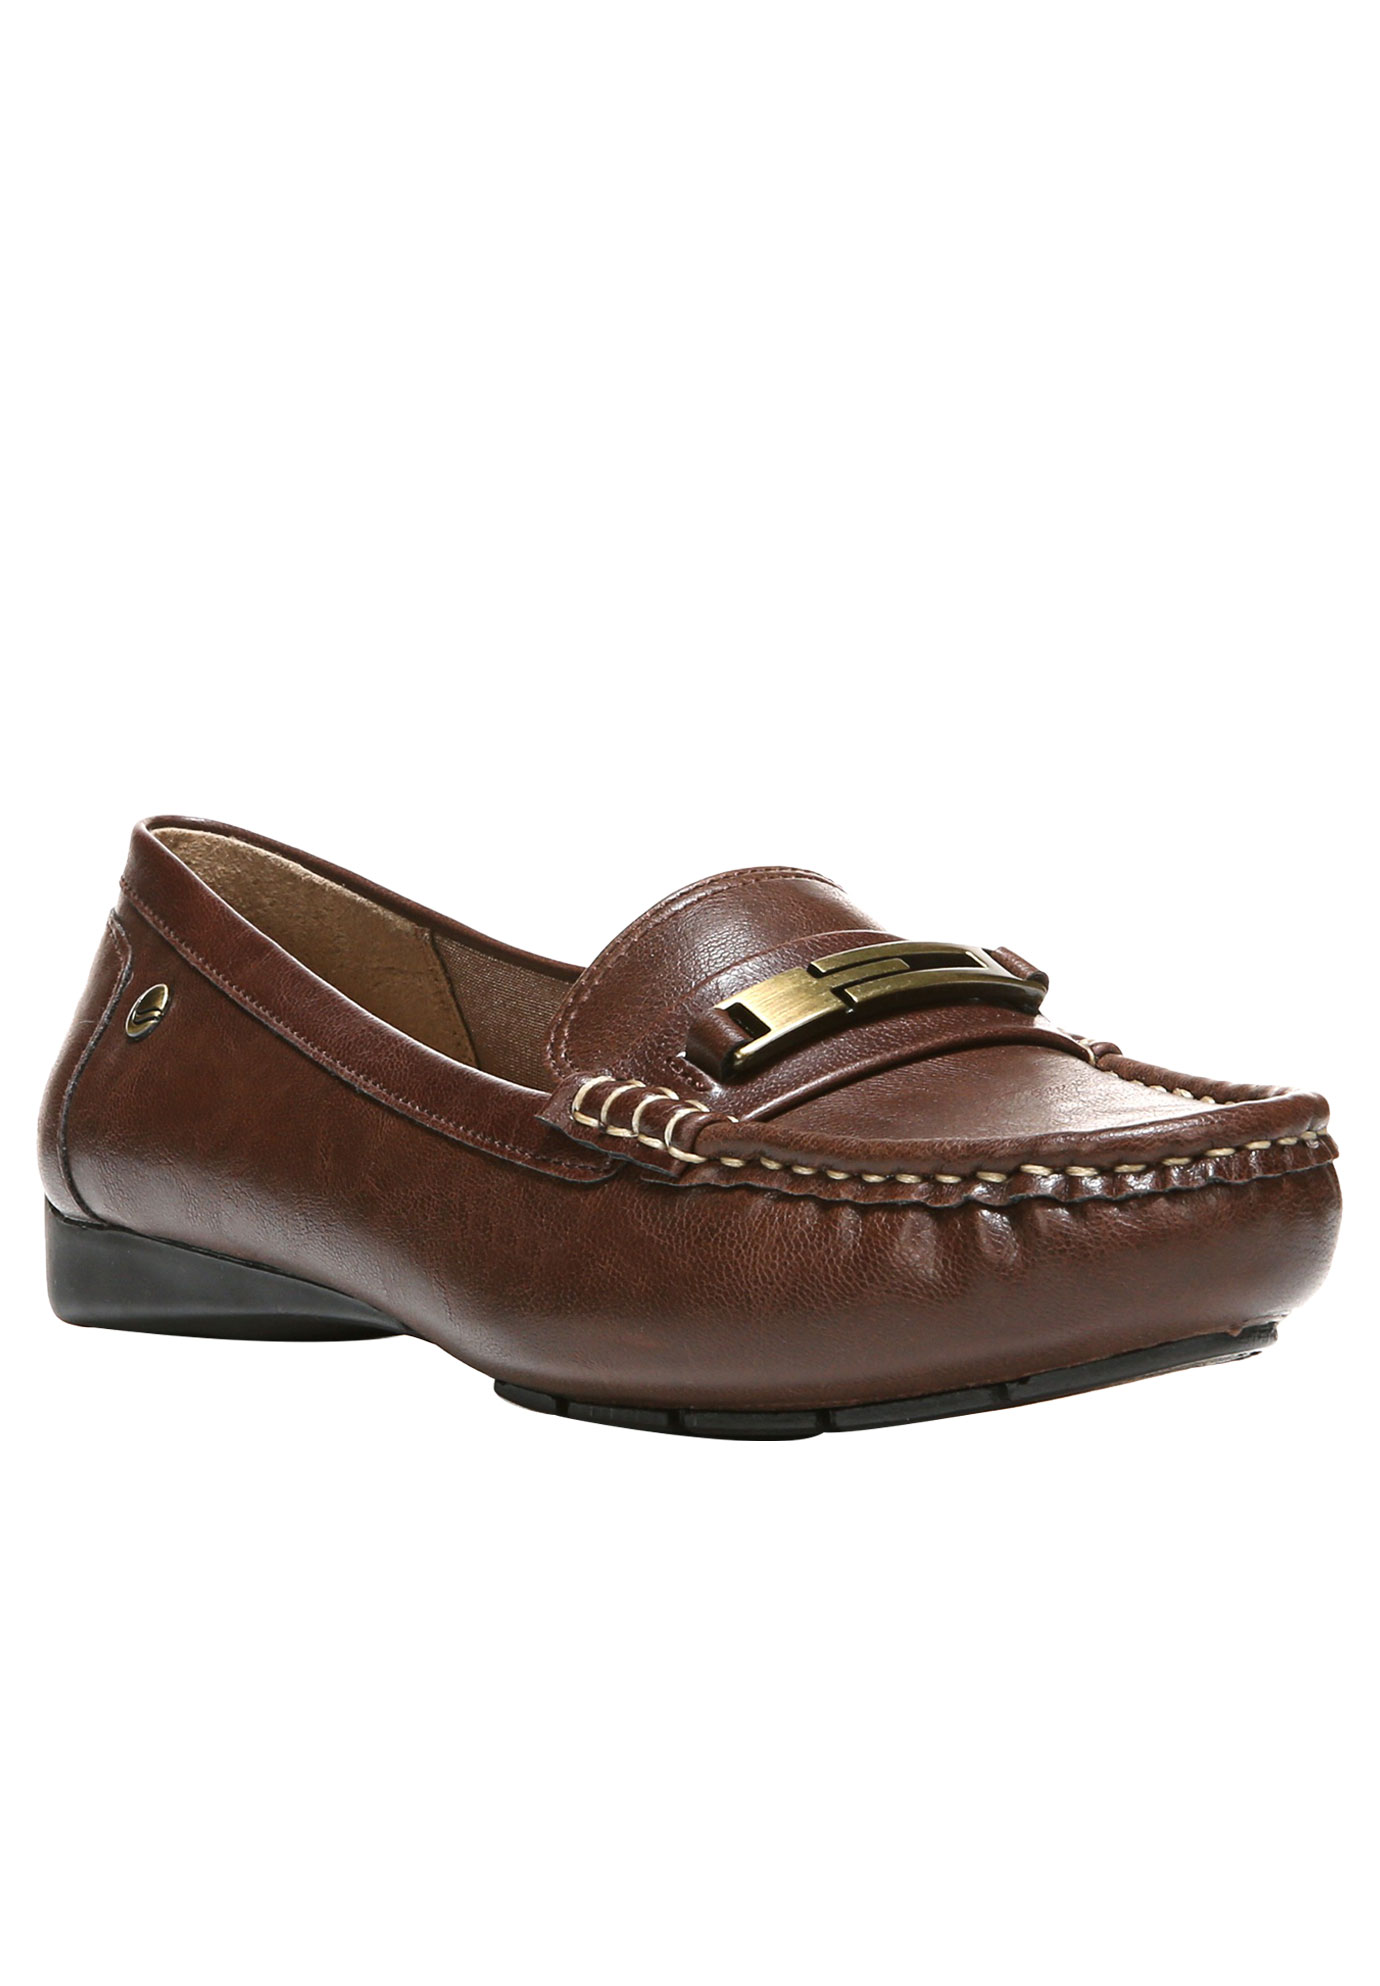 Viva Loafers by LifeStride®, MID BROWN, hi-res